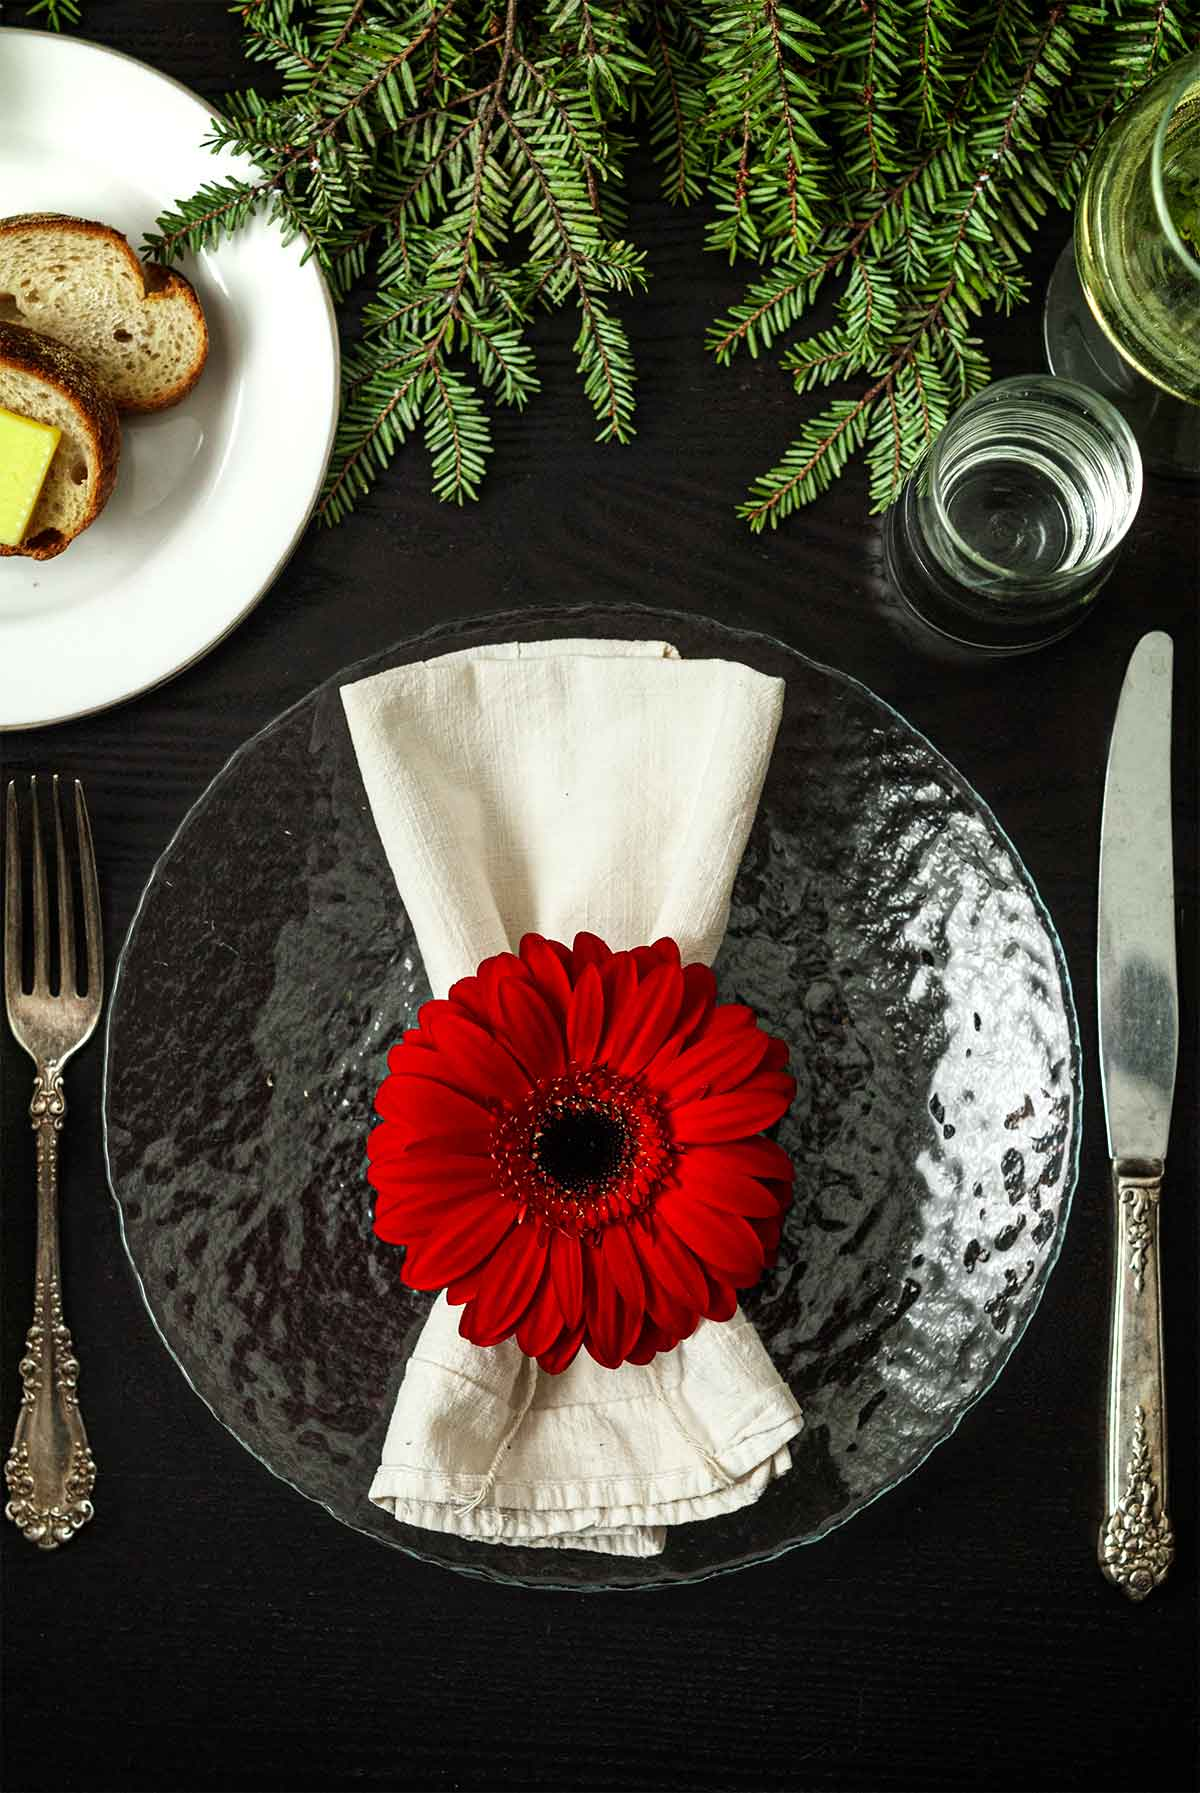 A Gerbera Daisy on top of a napkin on a plate on a table with holiday greenery, a plate of bread, silverware and glassware.